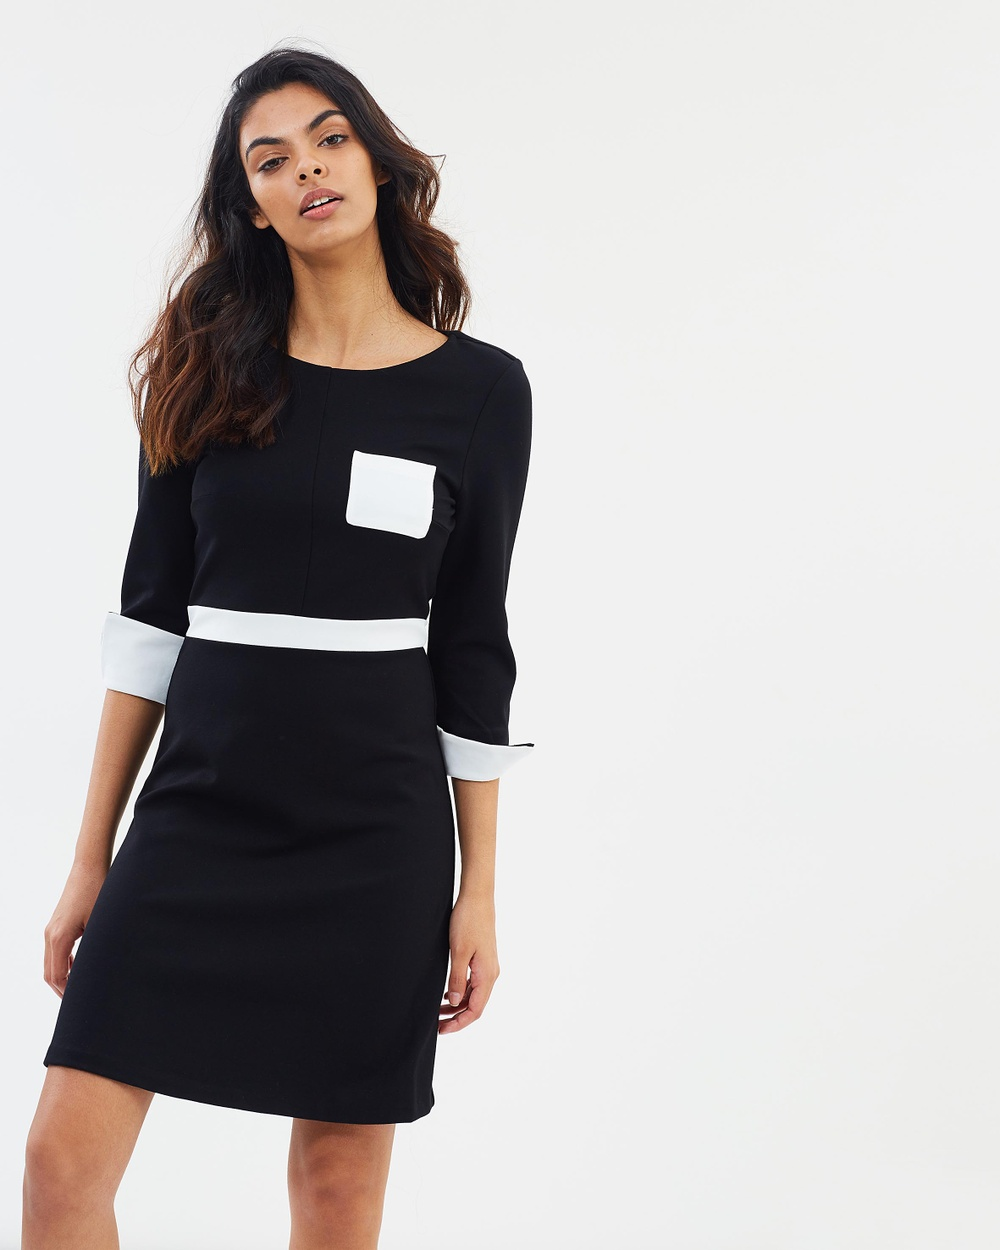 French Connection Gabrielle Jersey Dress Dresses Winter White & Black Gabrielle Jersey Dress